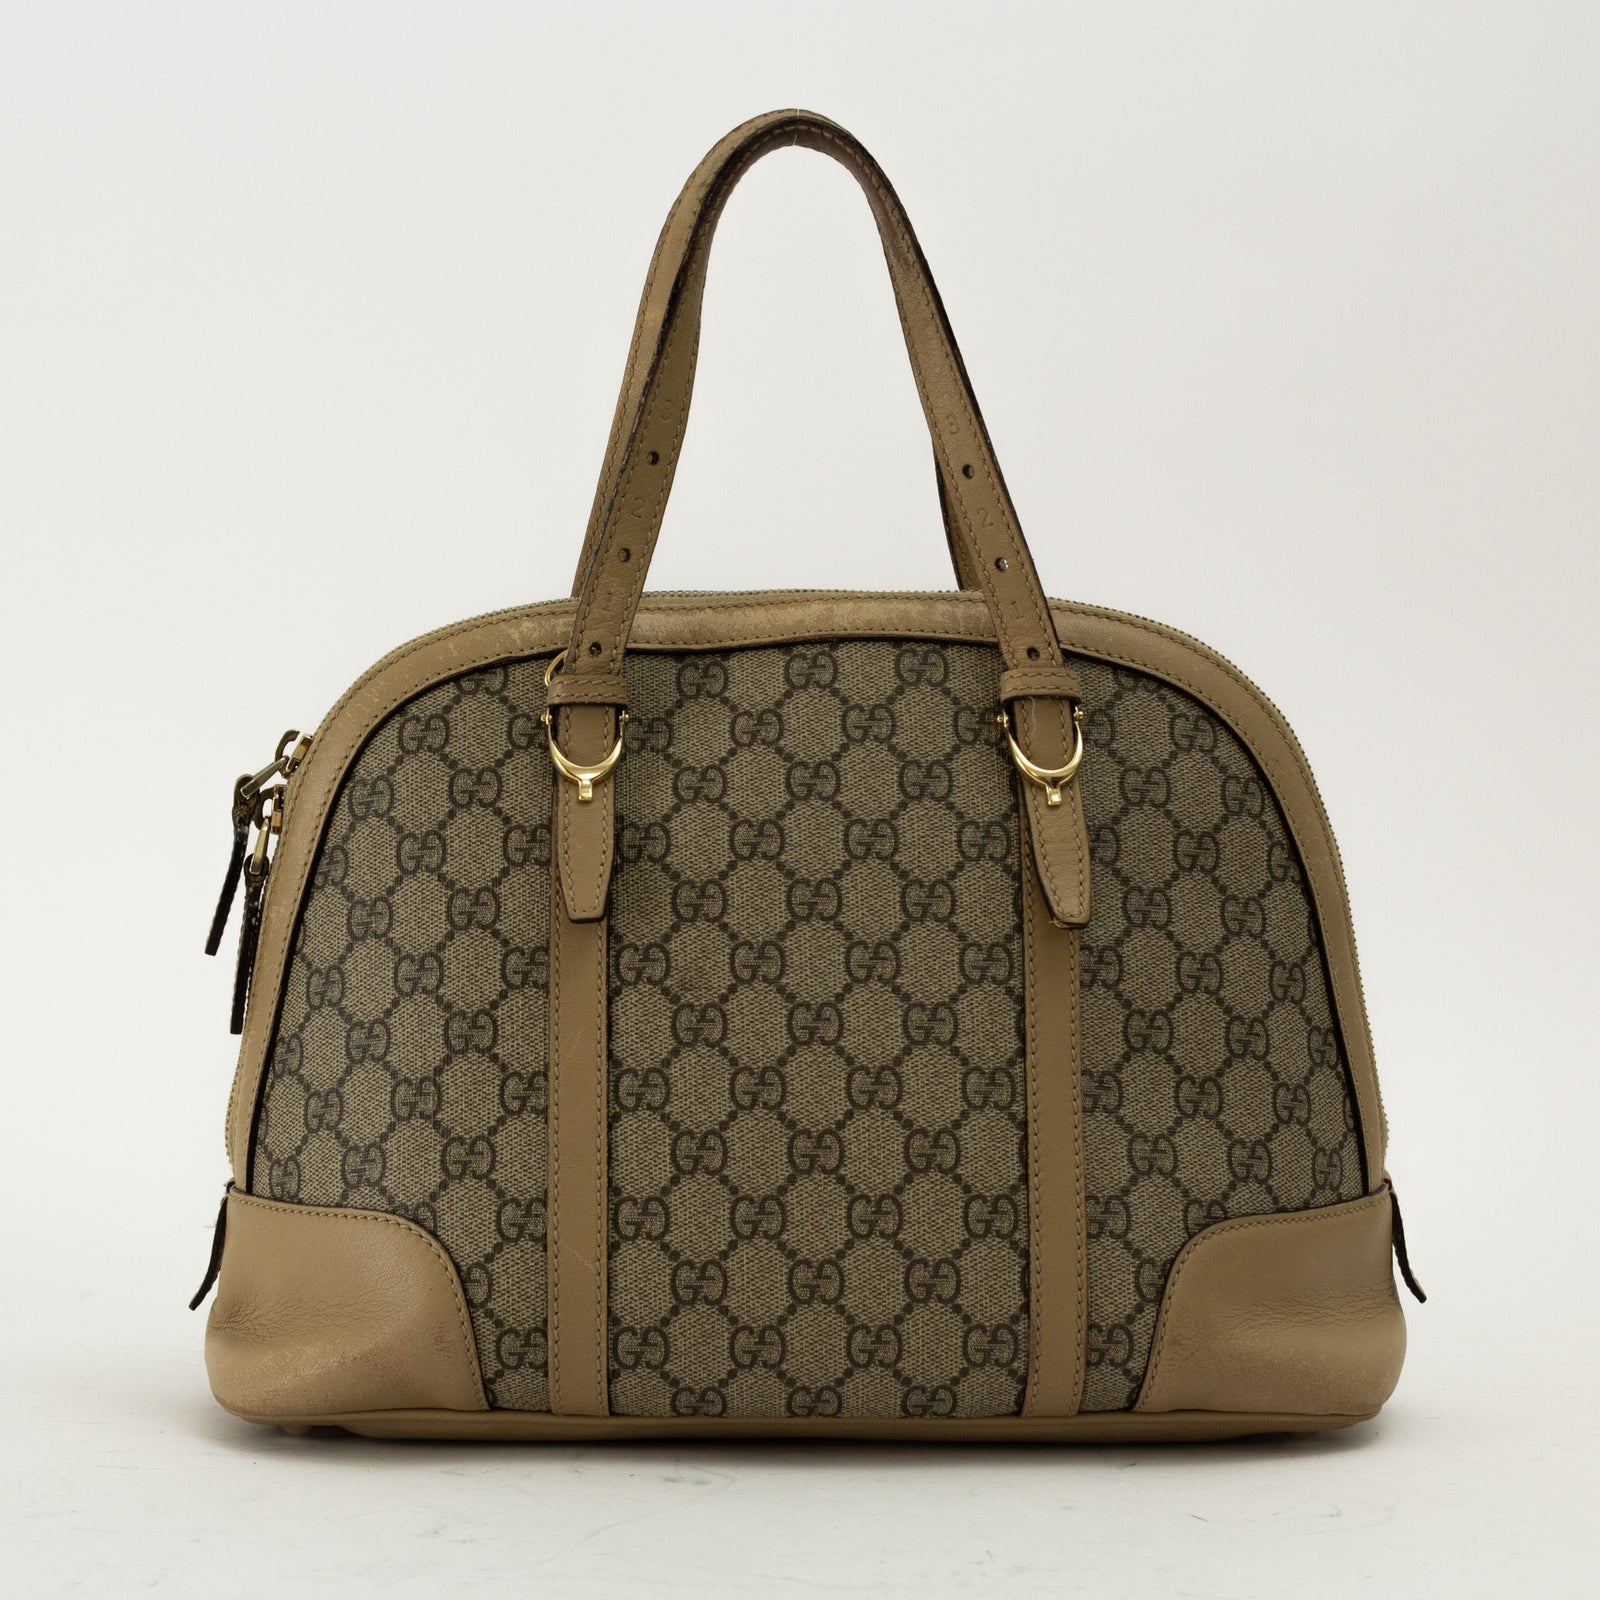 GG Coated Canvas Bag